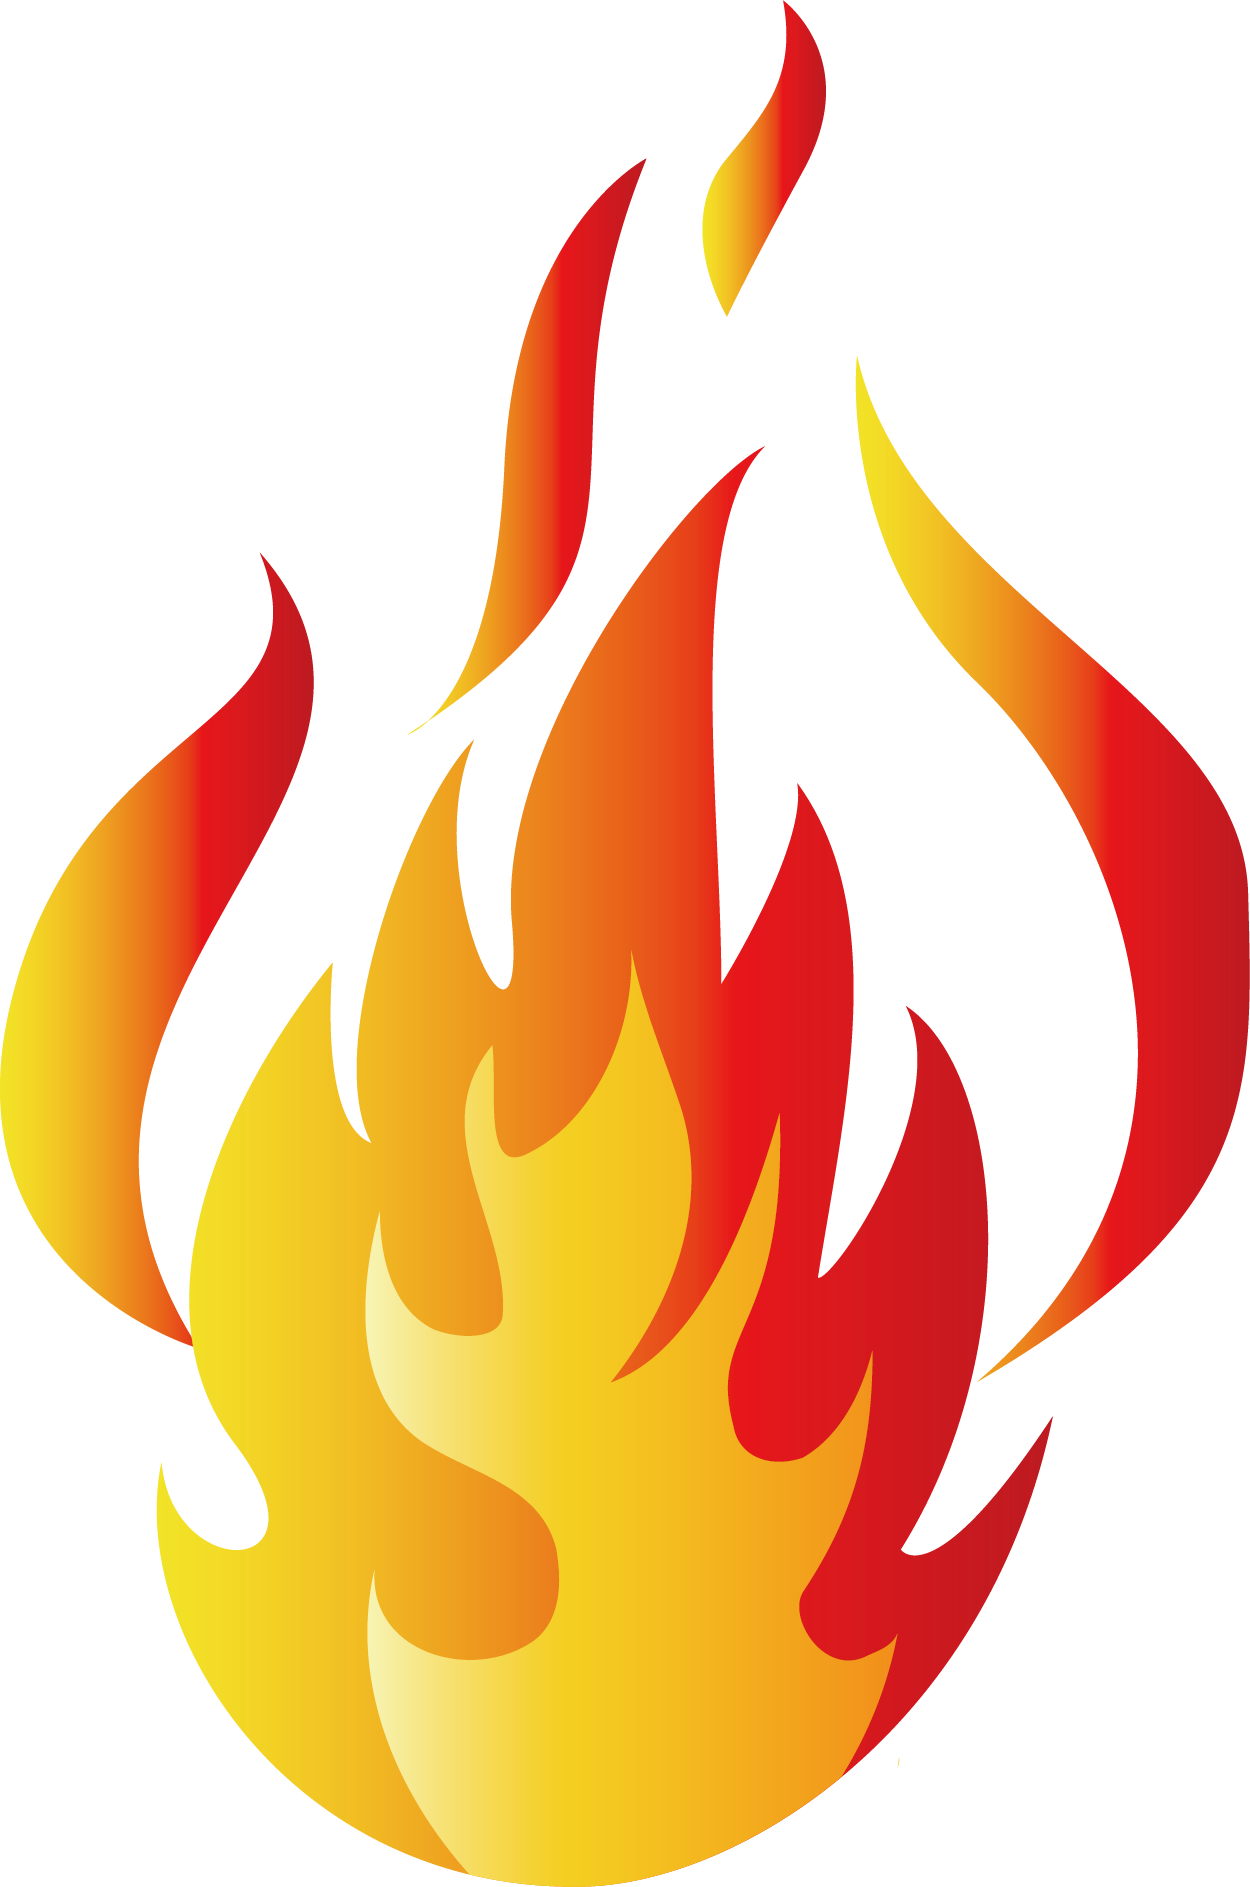 Cool flame Cartoon - Flame cartoon png download - 1250 ...